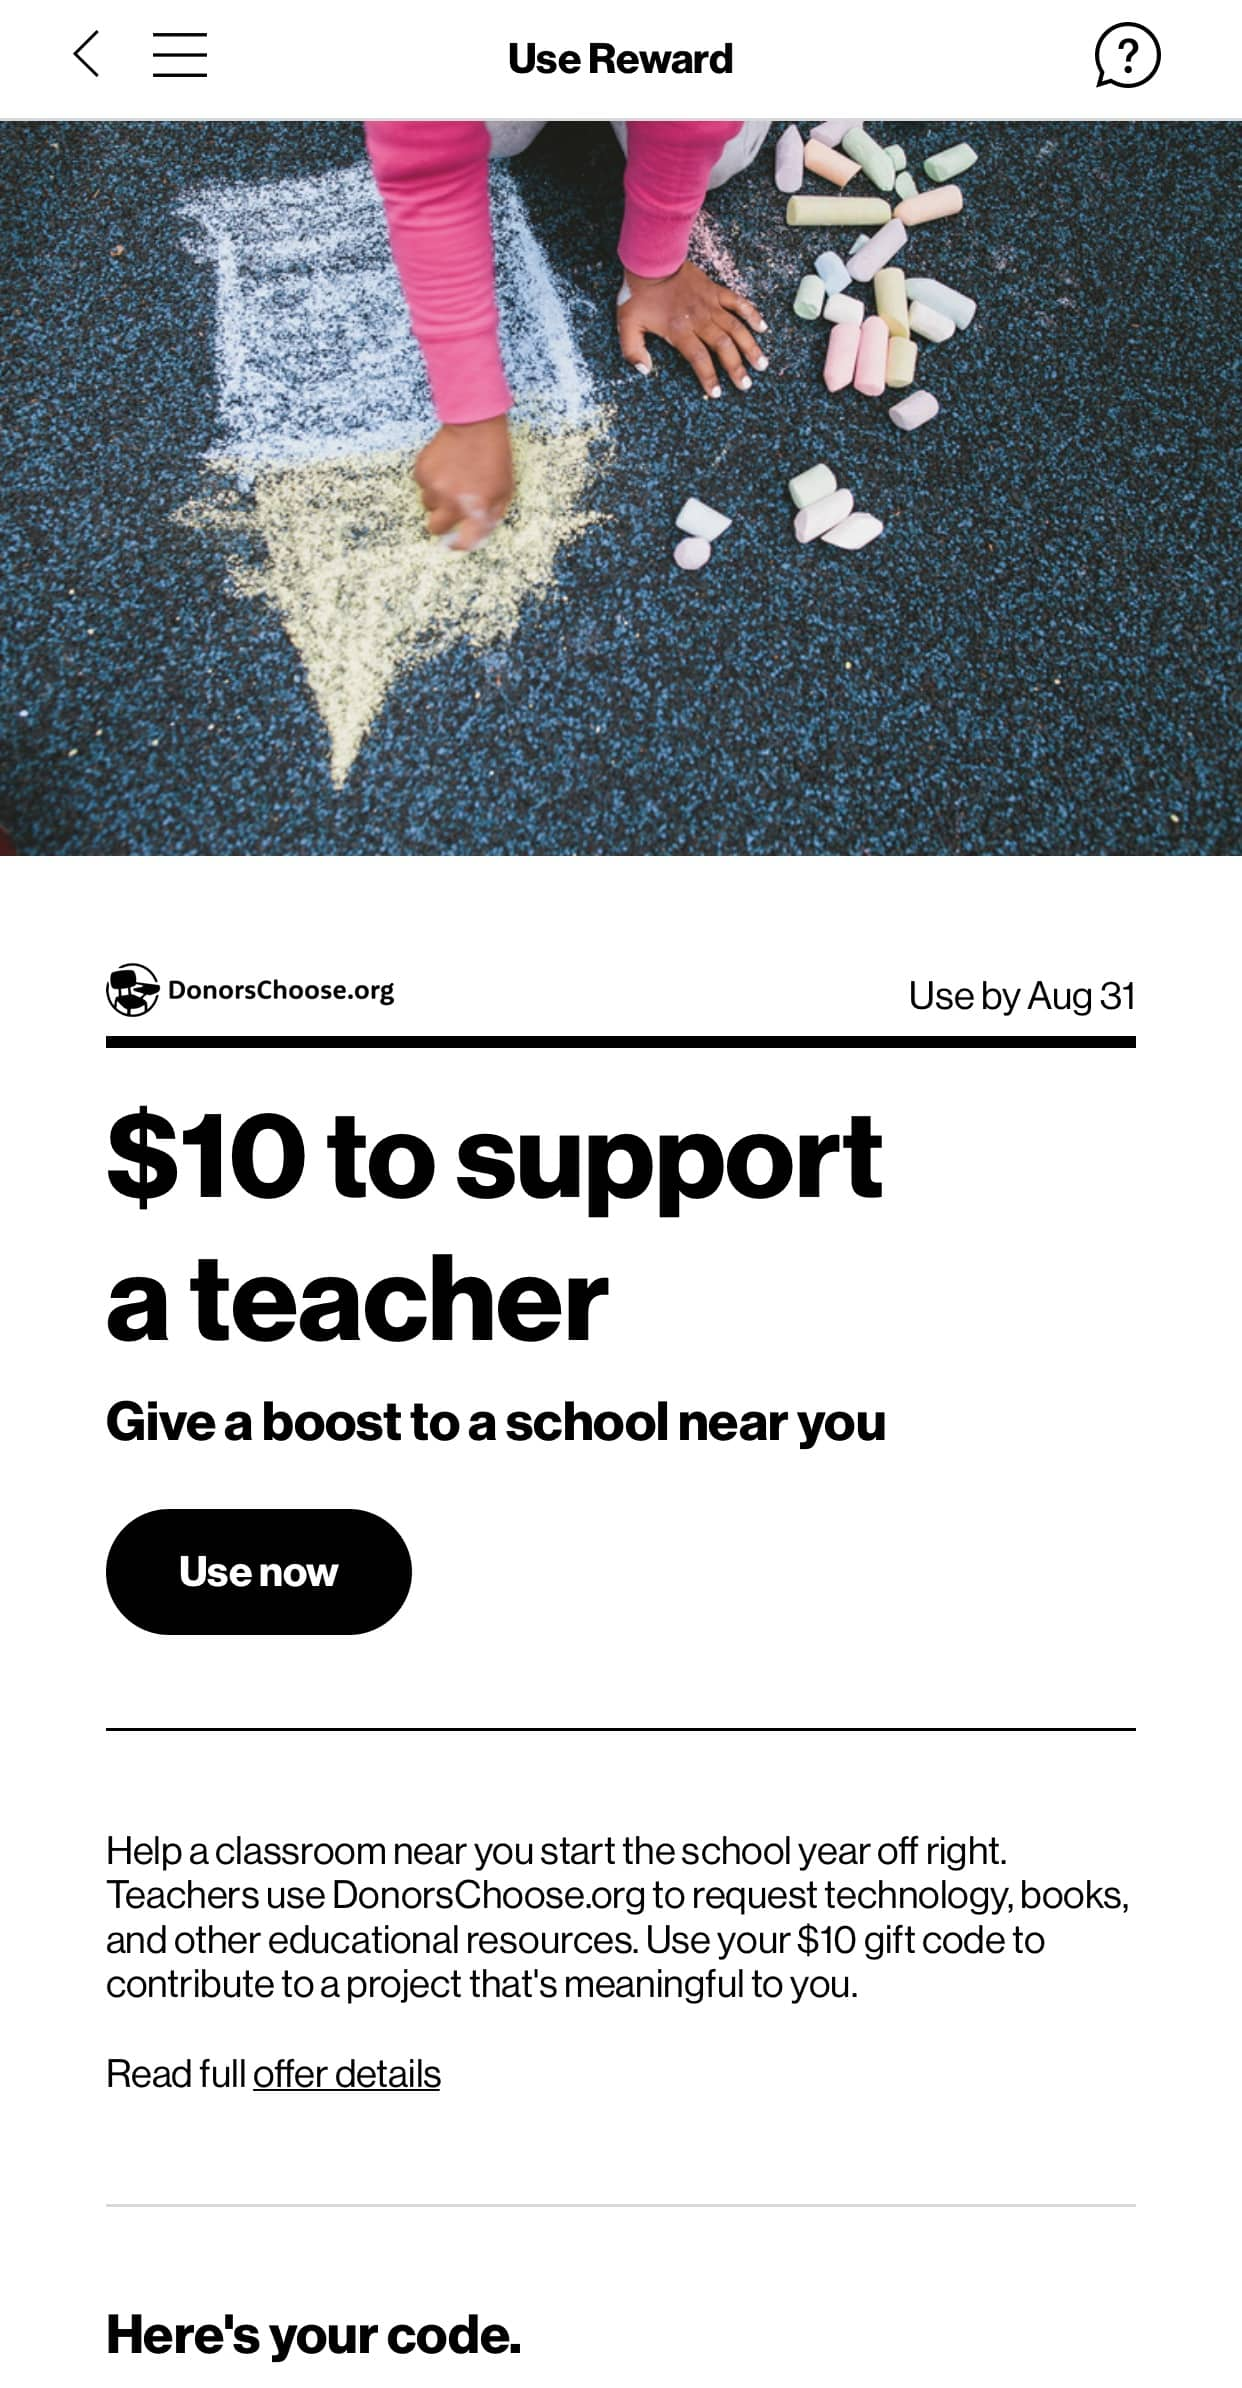 Verizon UP: Free $10 to support a teacher DonorsChoose.org